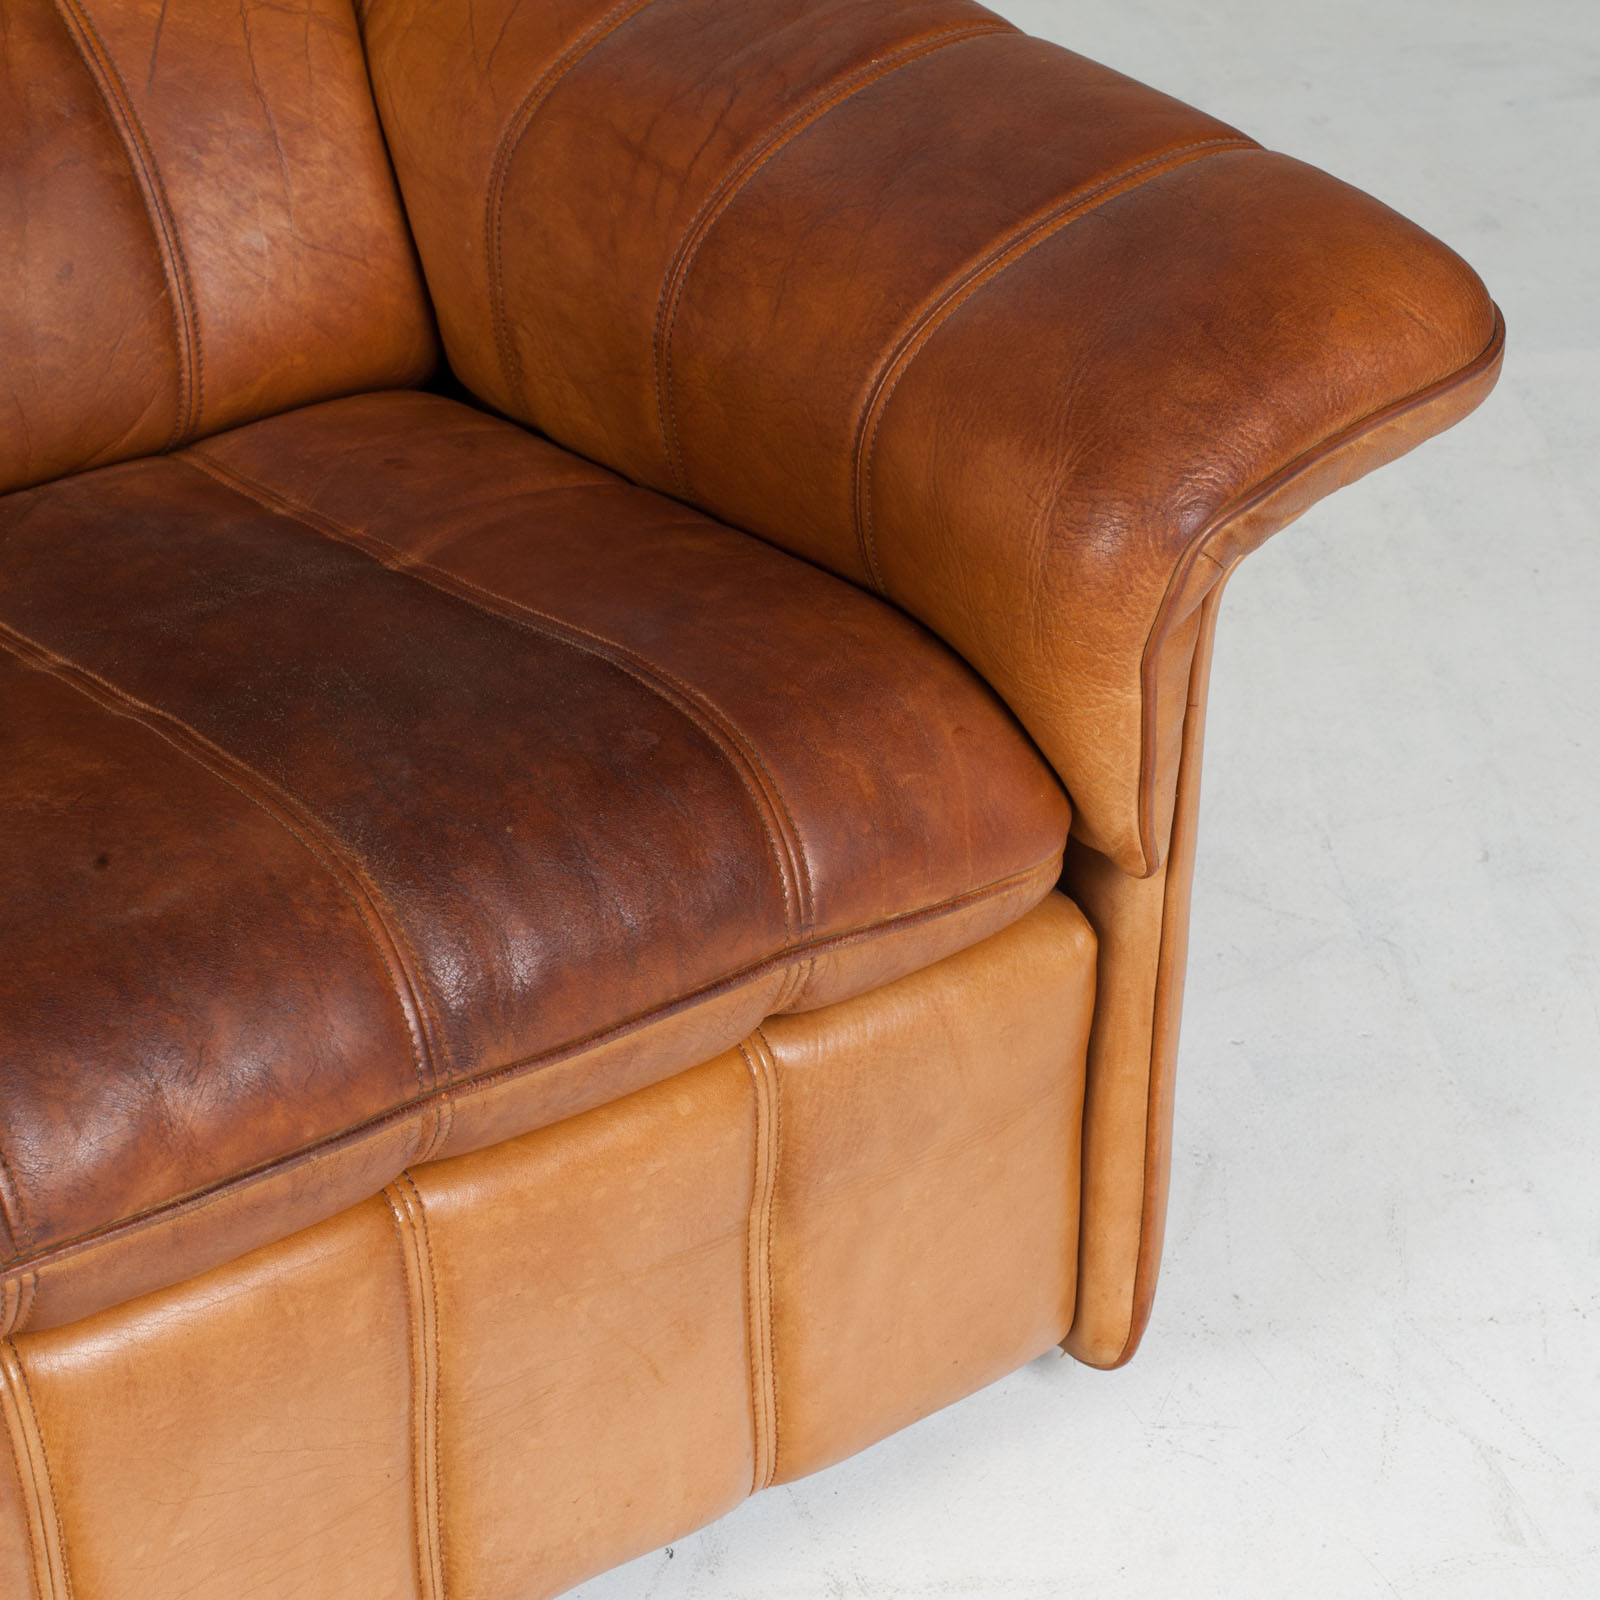 3 Seat Sofa By De Sede In Tan Leather 1970s Switzerland 10